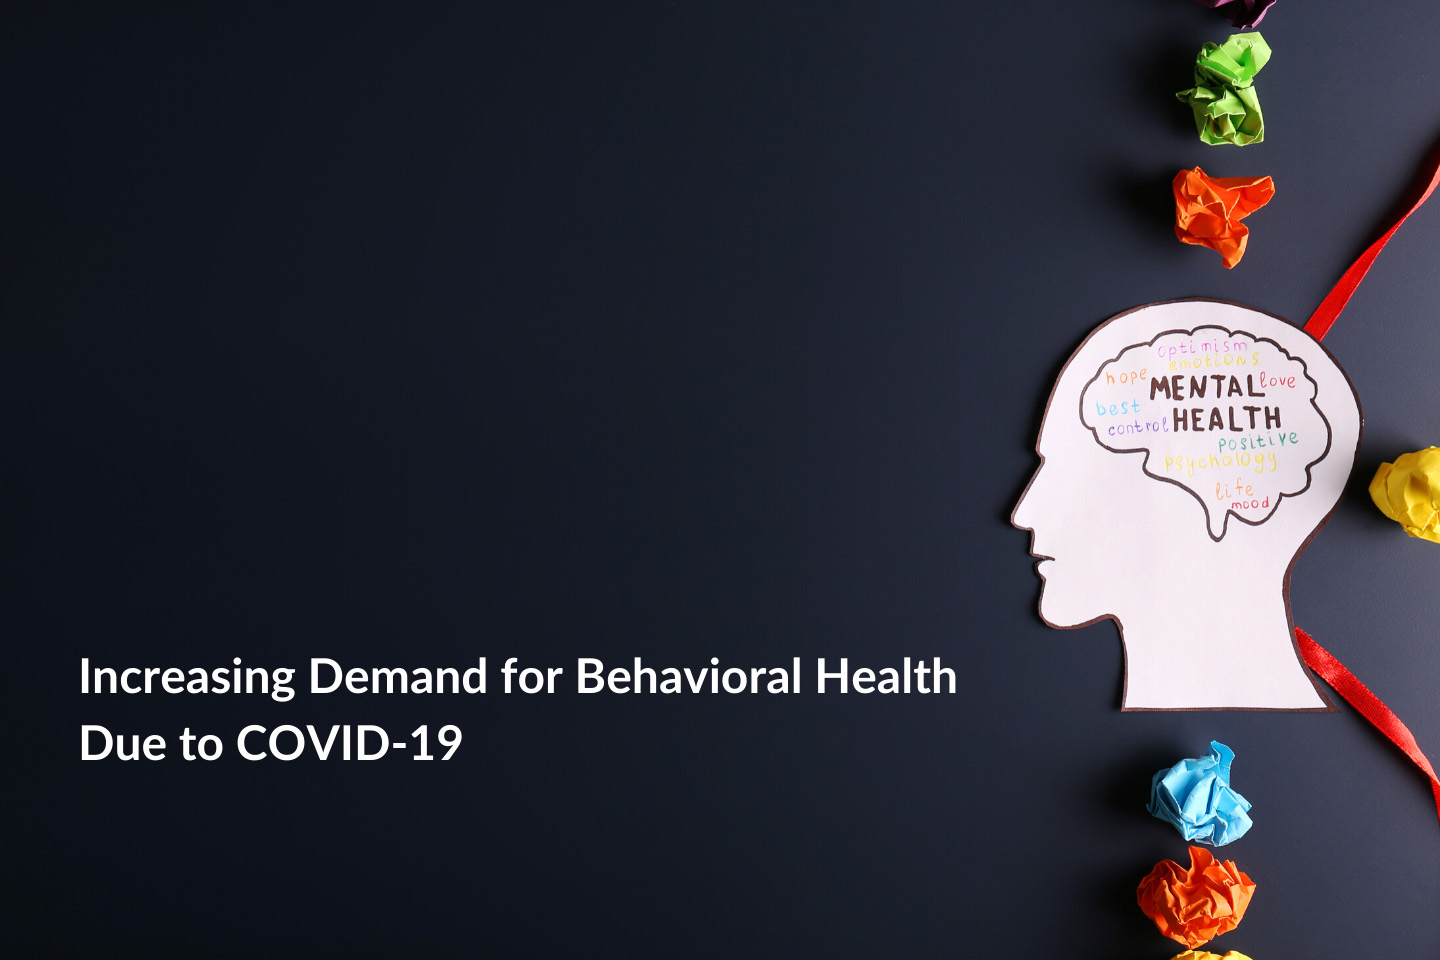 Increasing Demand for Behavioral Health Due to COVID-19